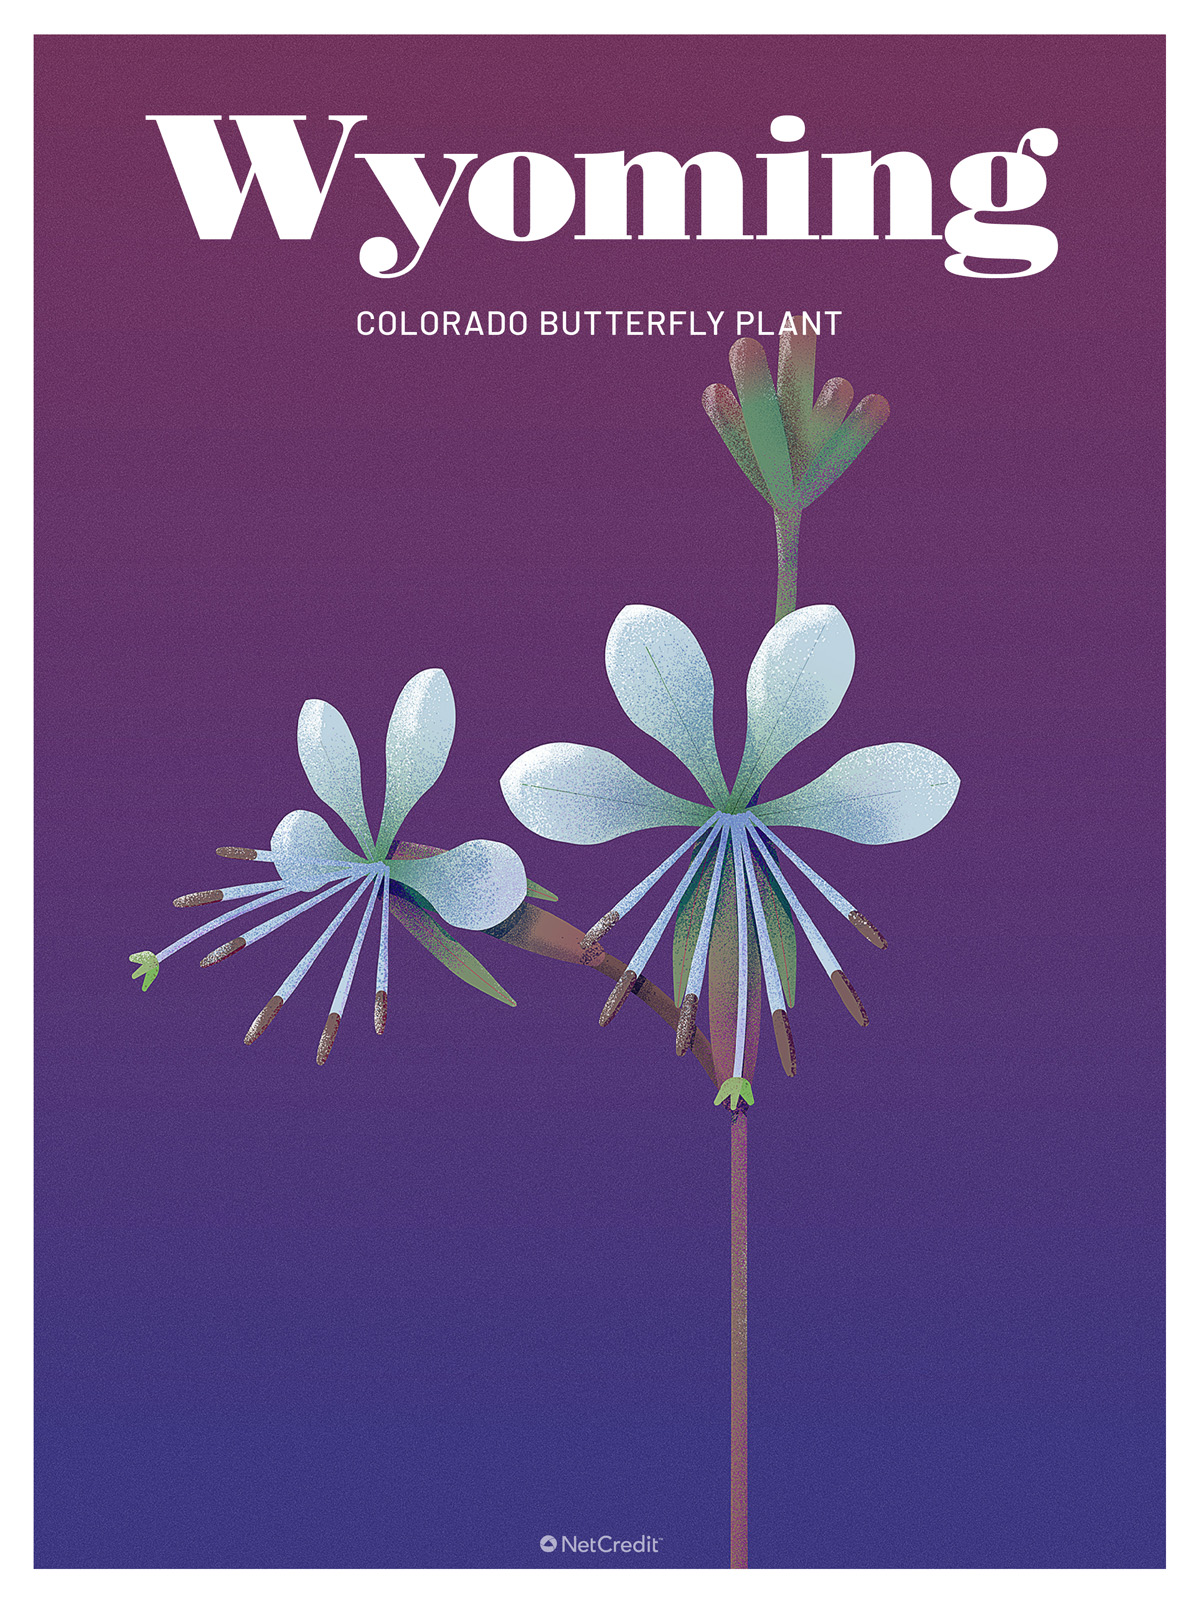 Endangered Plant in Wyoming: Colorado Butterfly Plant